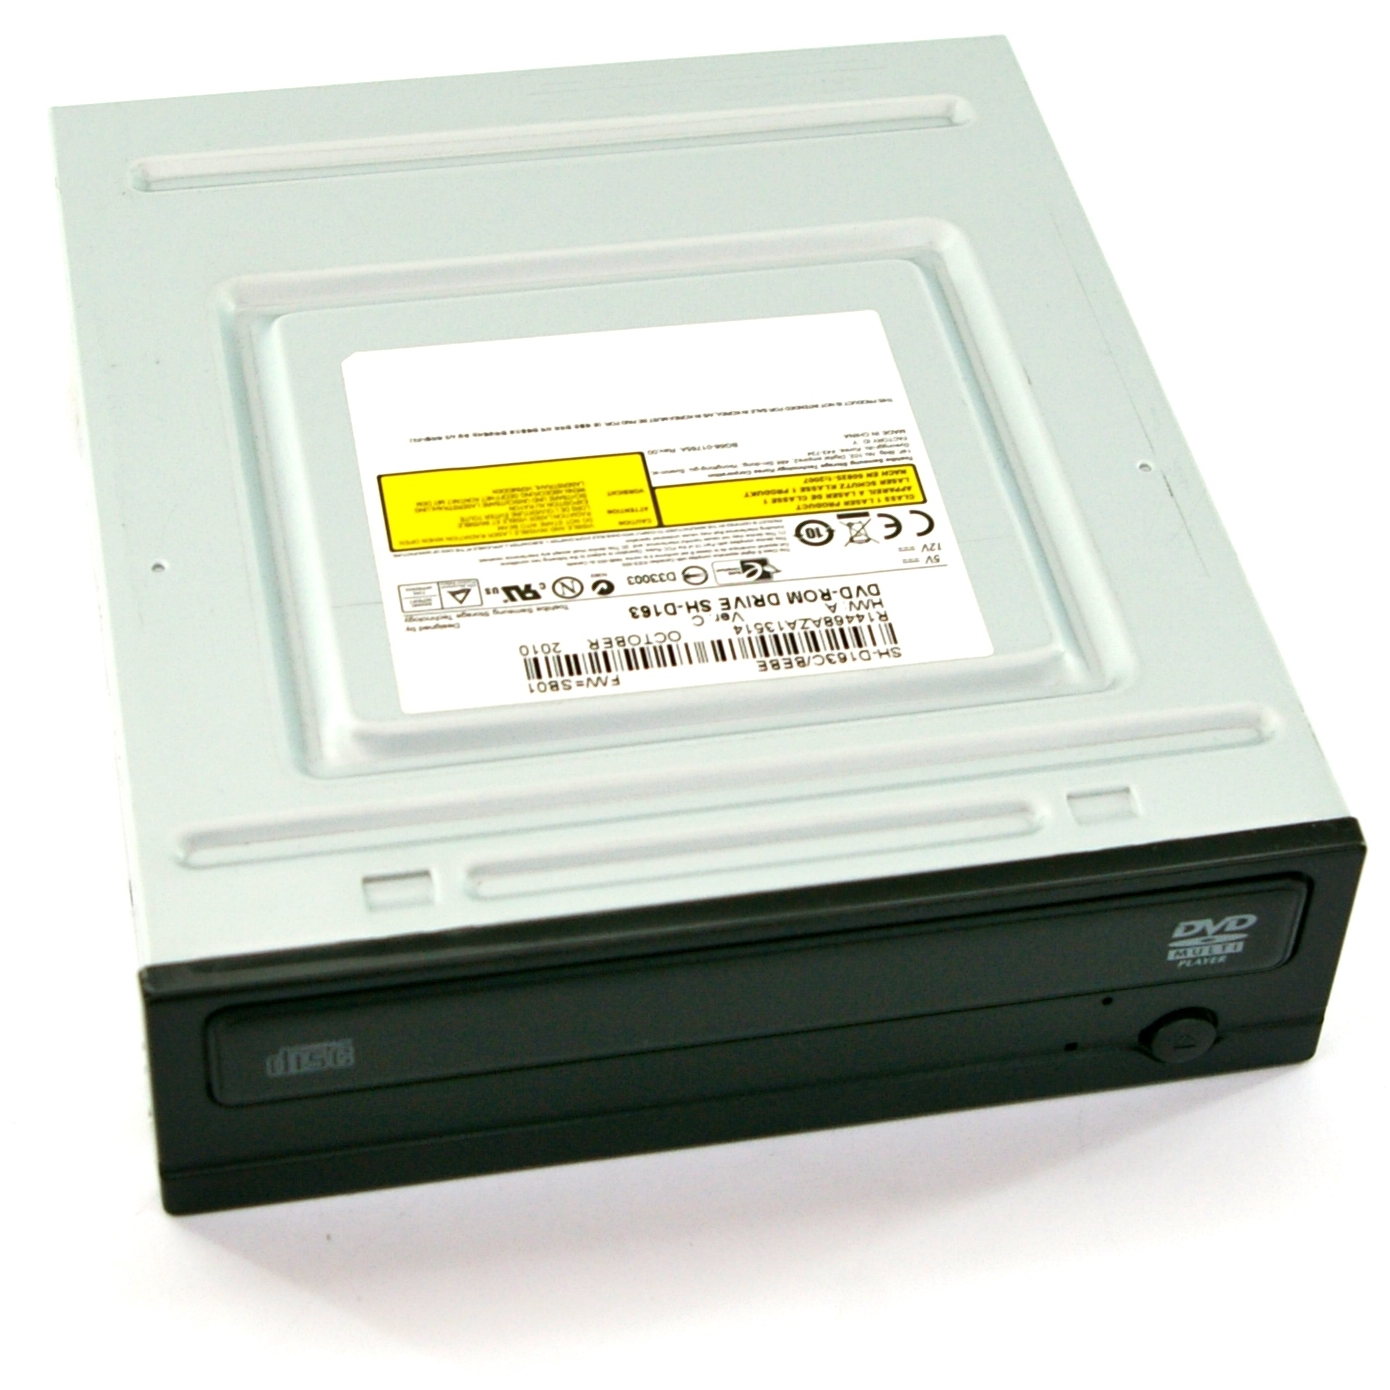 toshiba samsung sh d163c bebe laufwerk dvd rom drive sata mit rechnung ebay. Black Bedroom Furniture Sets. Home Design Ideas